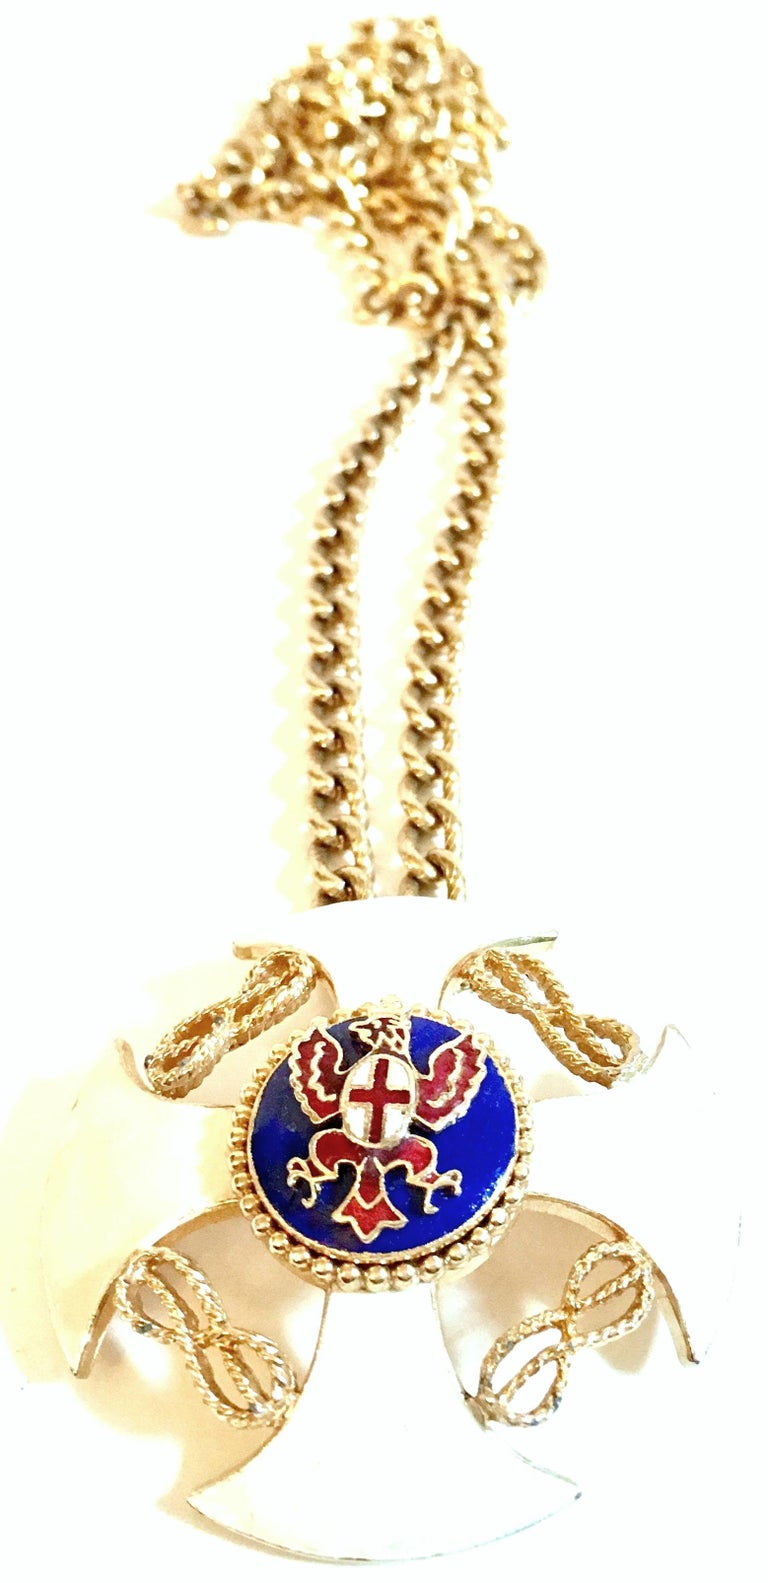 20th Century Gold & Enamel Crest Cross Brooch &Pendant Necklace By, Monet In Good Condition For Sale In West Palm Beach, FL